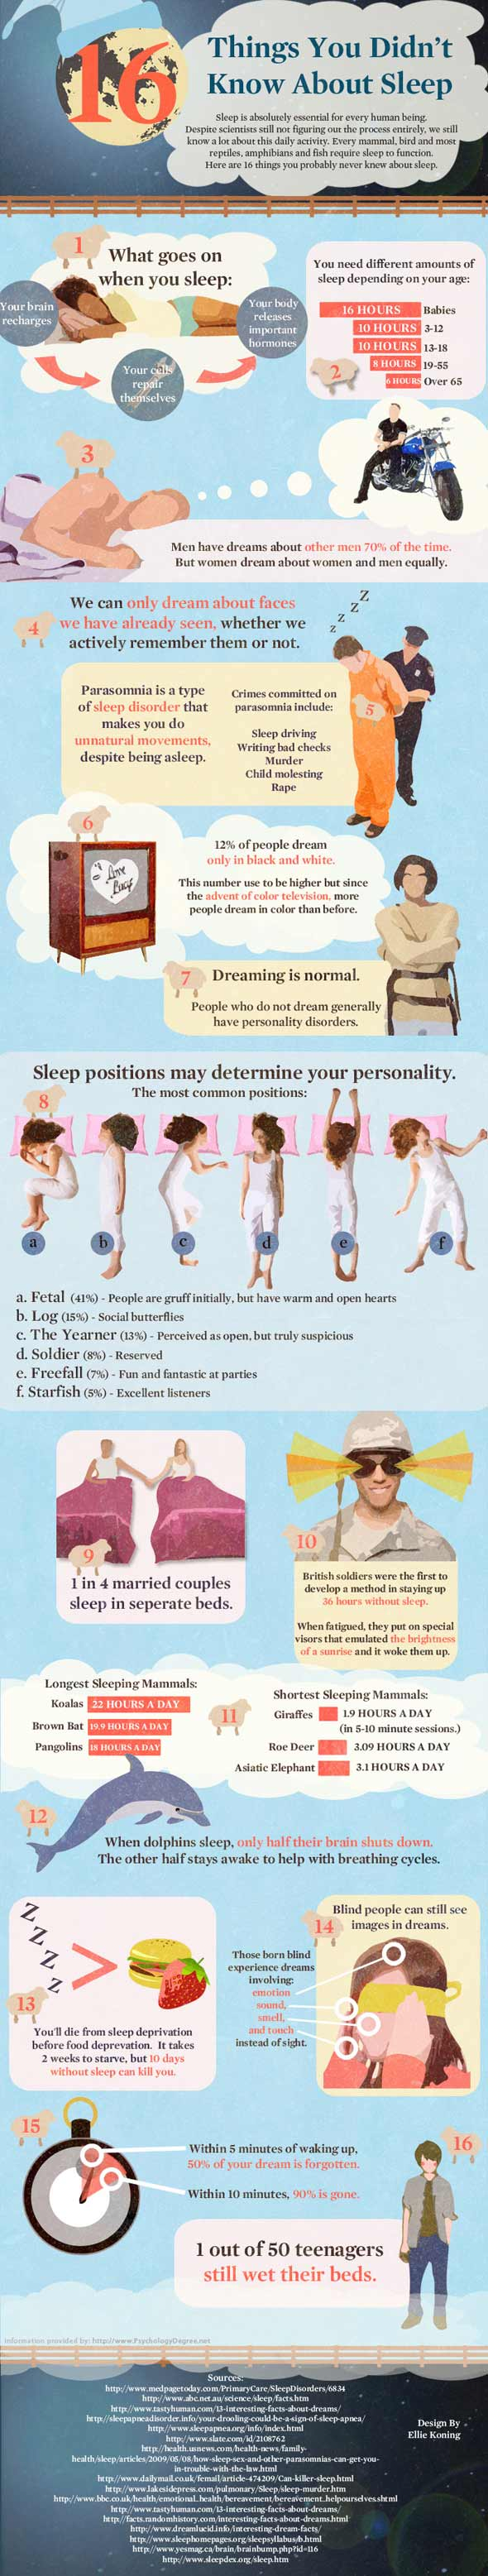 Amazing Facts You Didn't Know About Sleep